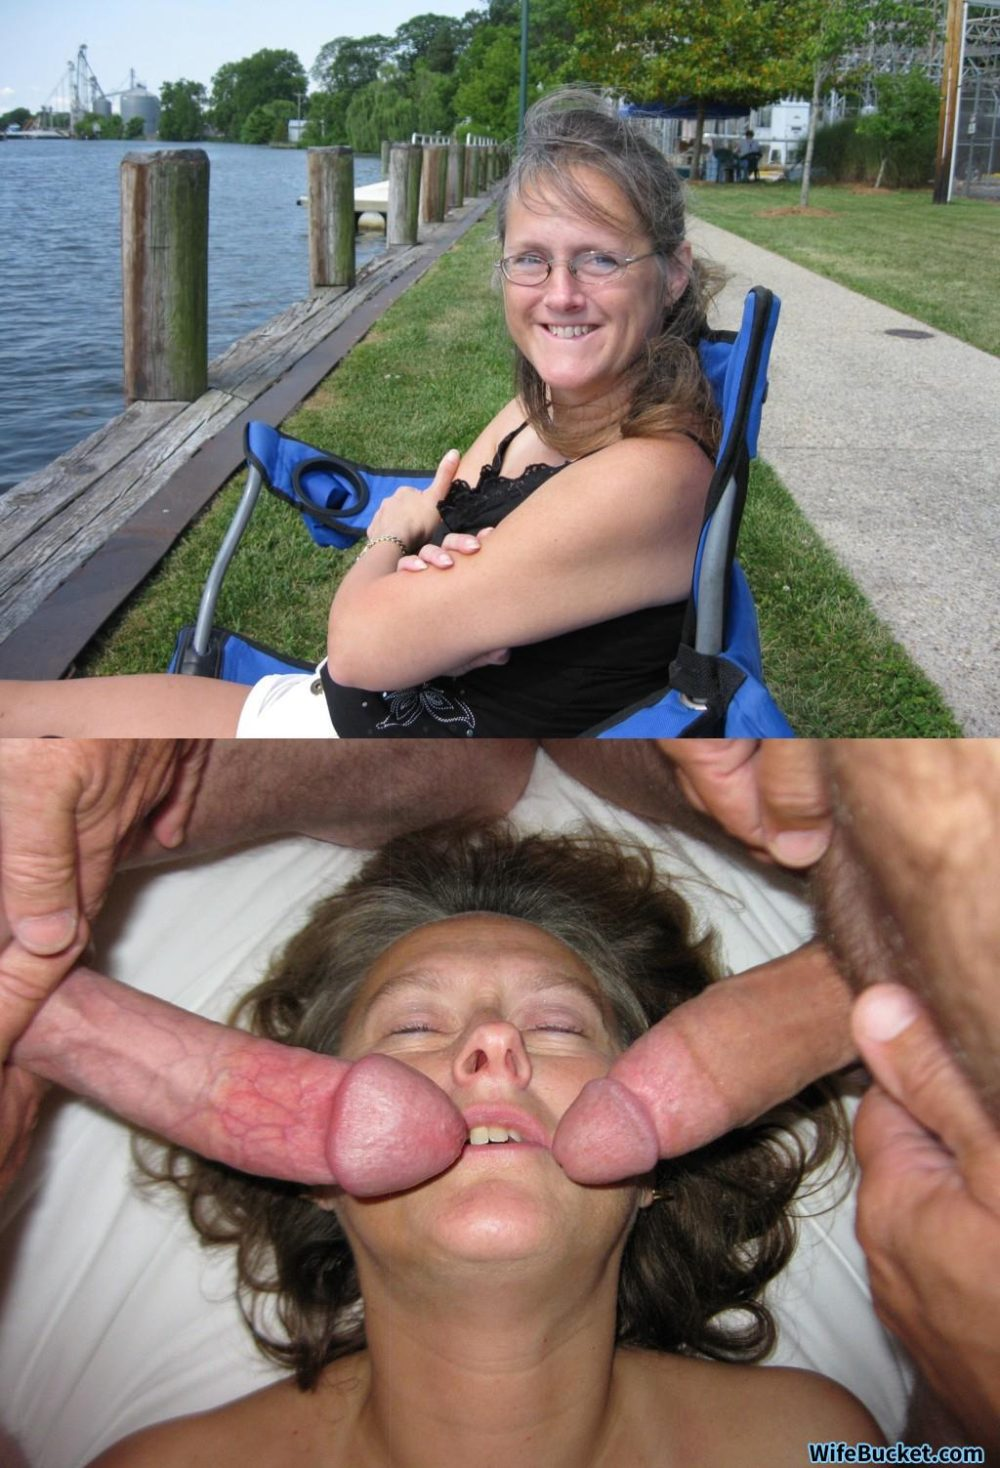 Before and after the gangbang